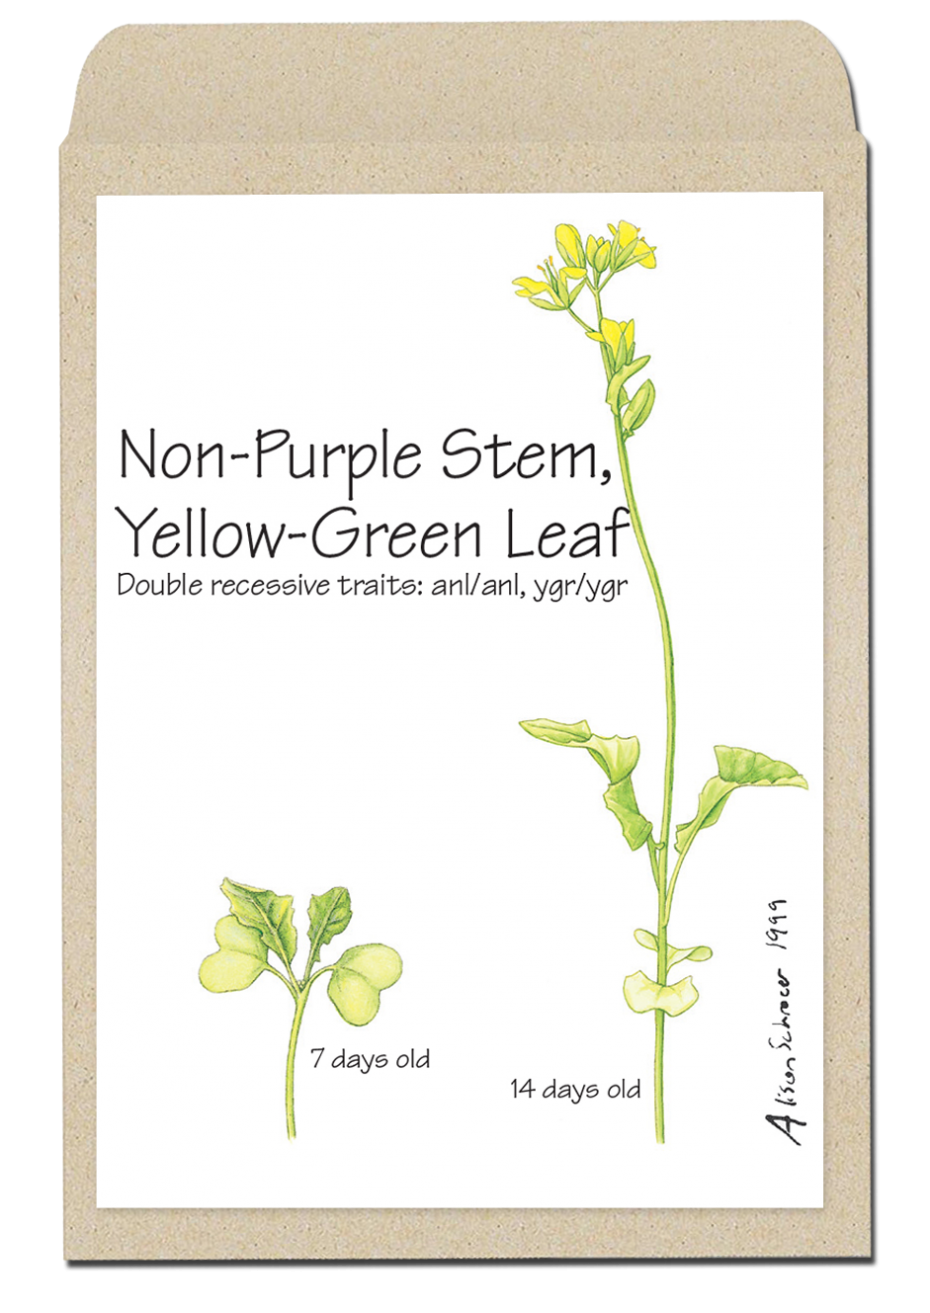 nonpurplestemyellowgreenleaf